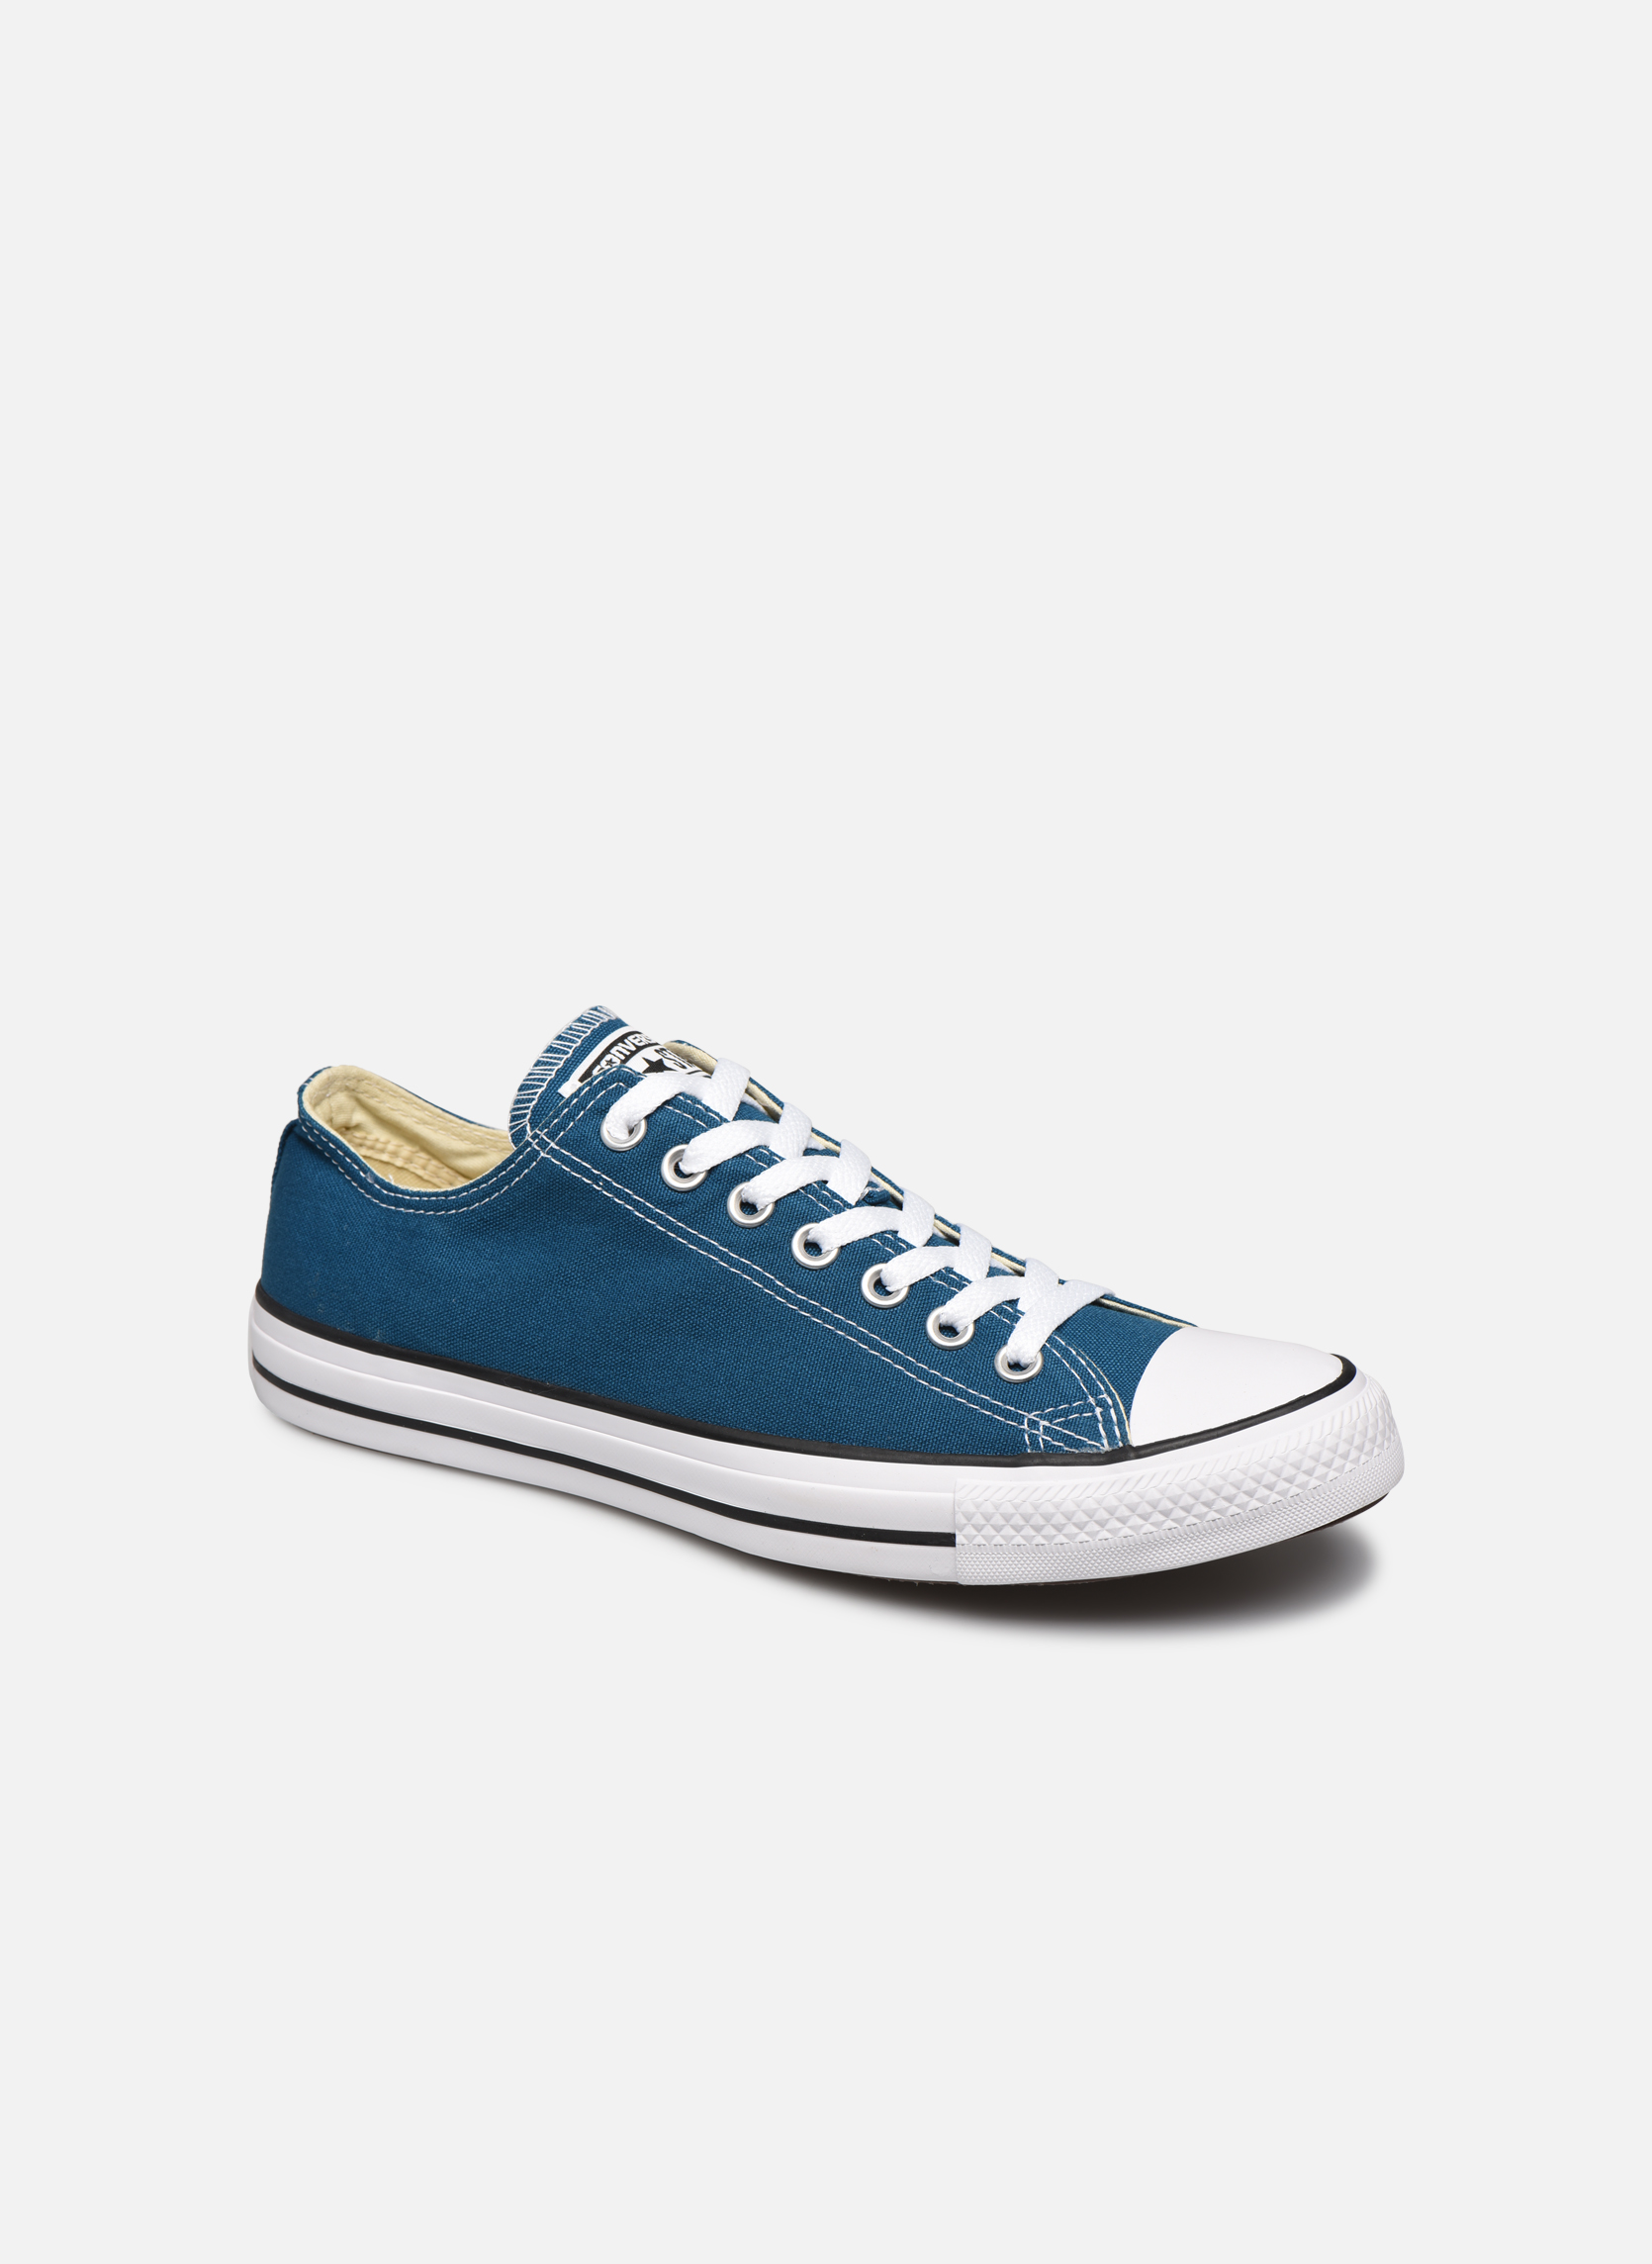 Converse Chuck Taylor All Star Ox M